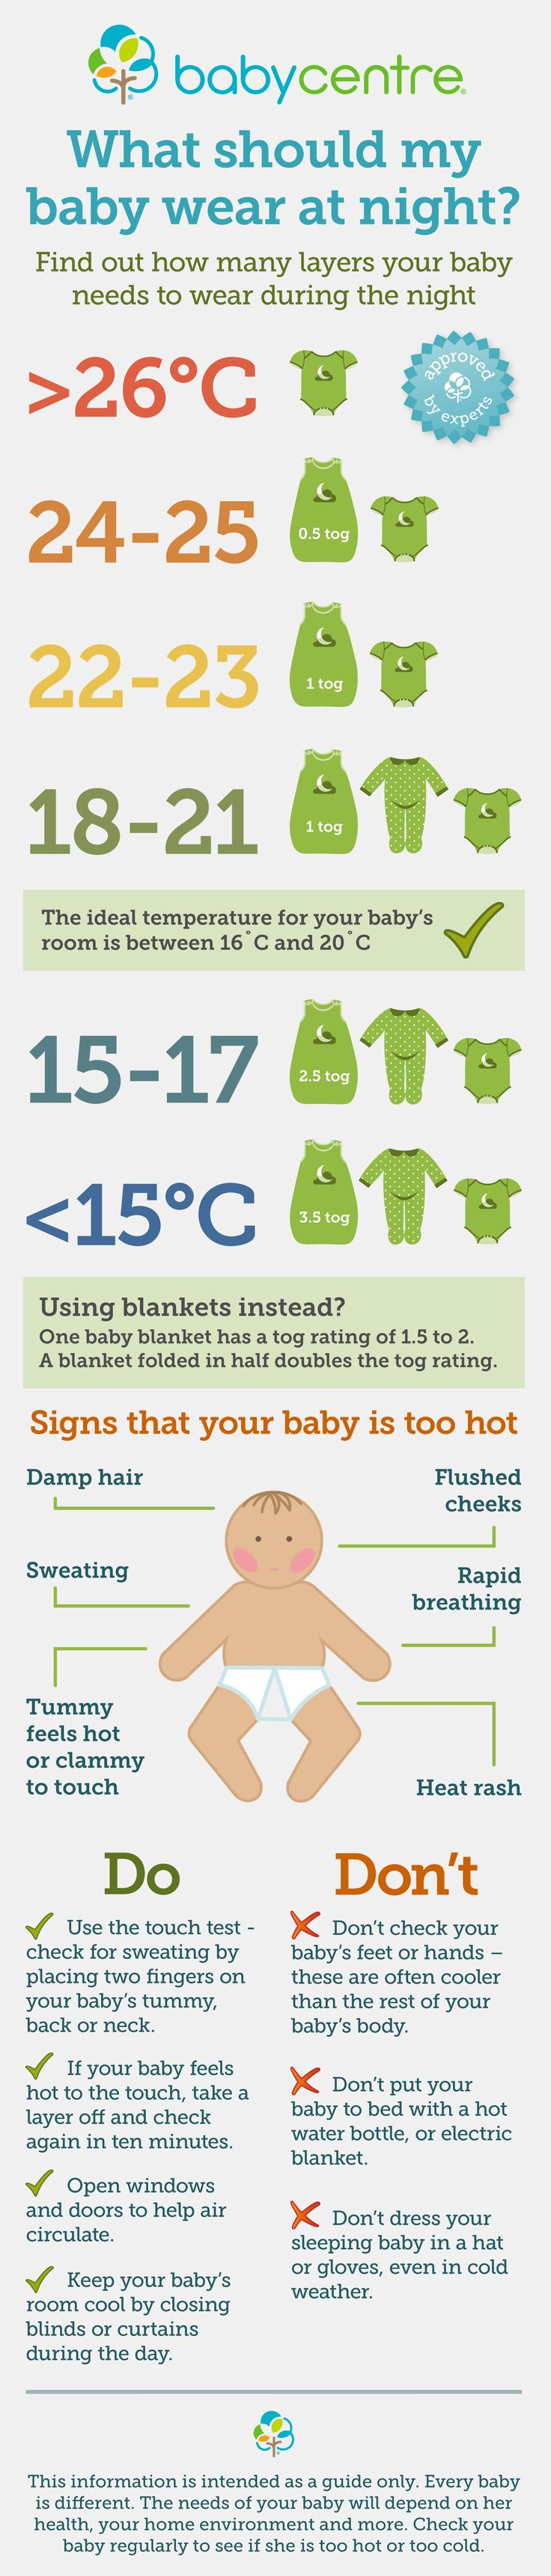 Baby sleep layers - clothing and sleeping bag thickness for baby sleeping at different temperatures, through hot weather and cold weather. Sleeping clothes